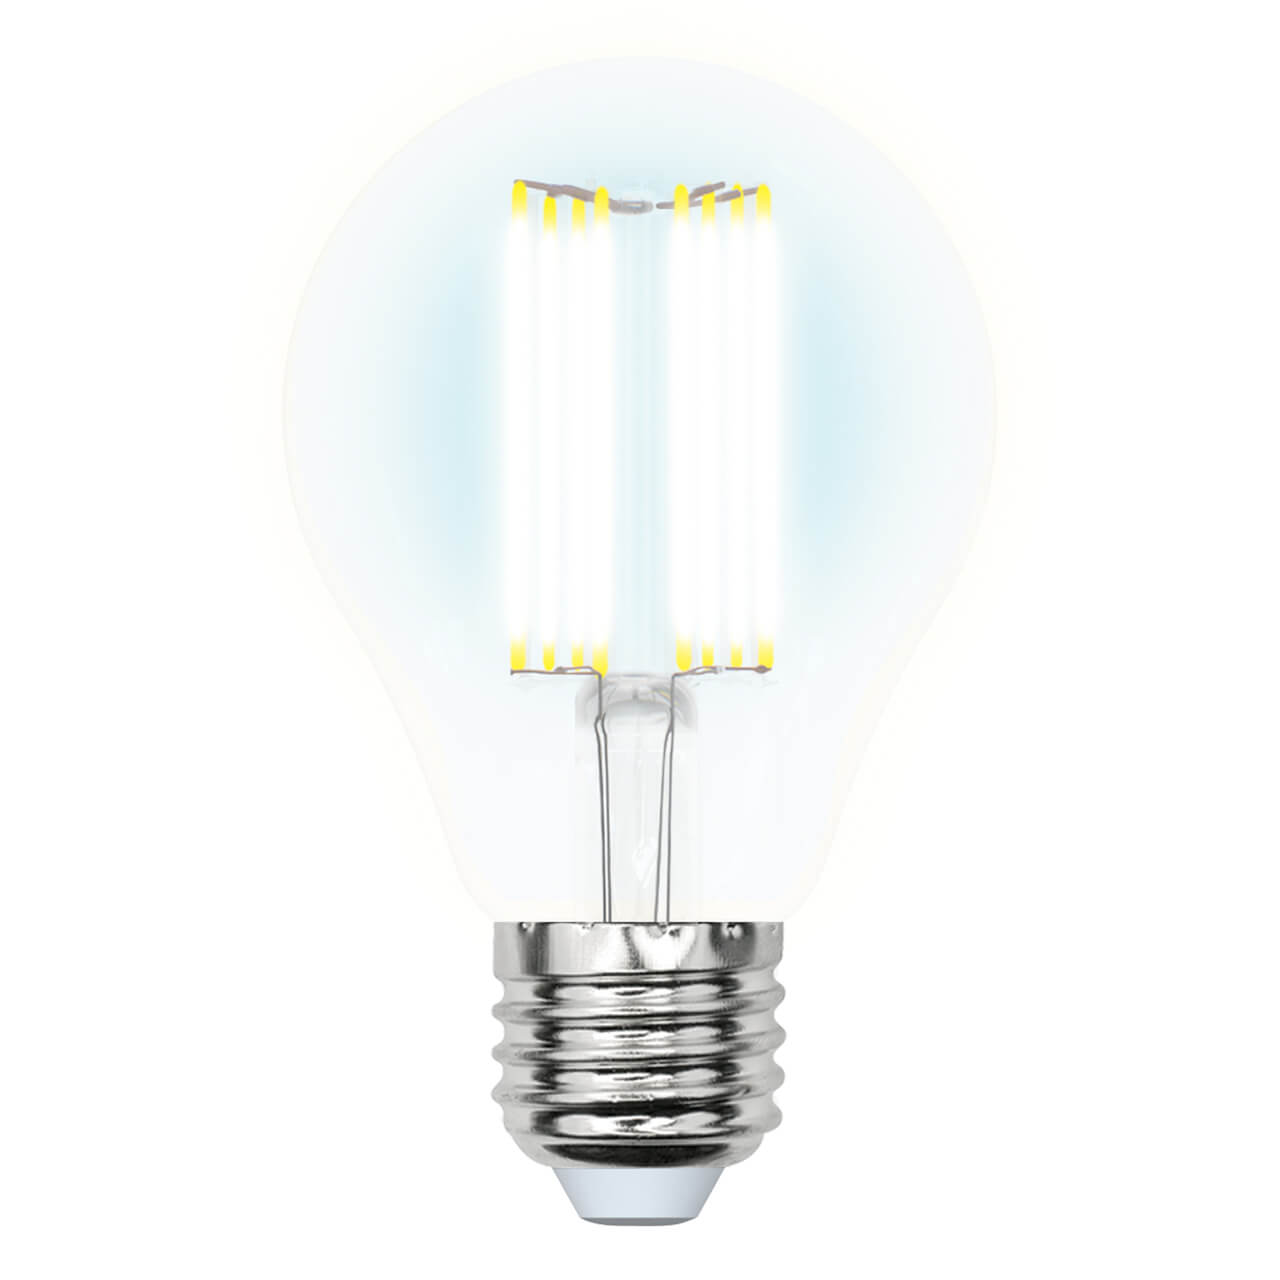 Лампочка Volpe LED-A70-23W/4000K/E27/CL PLS02WH Norma LED-A70